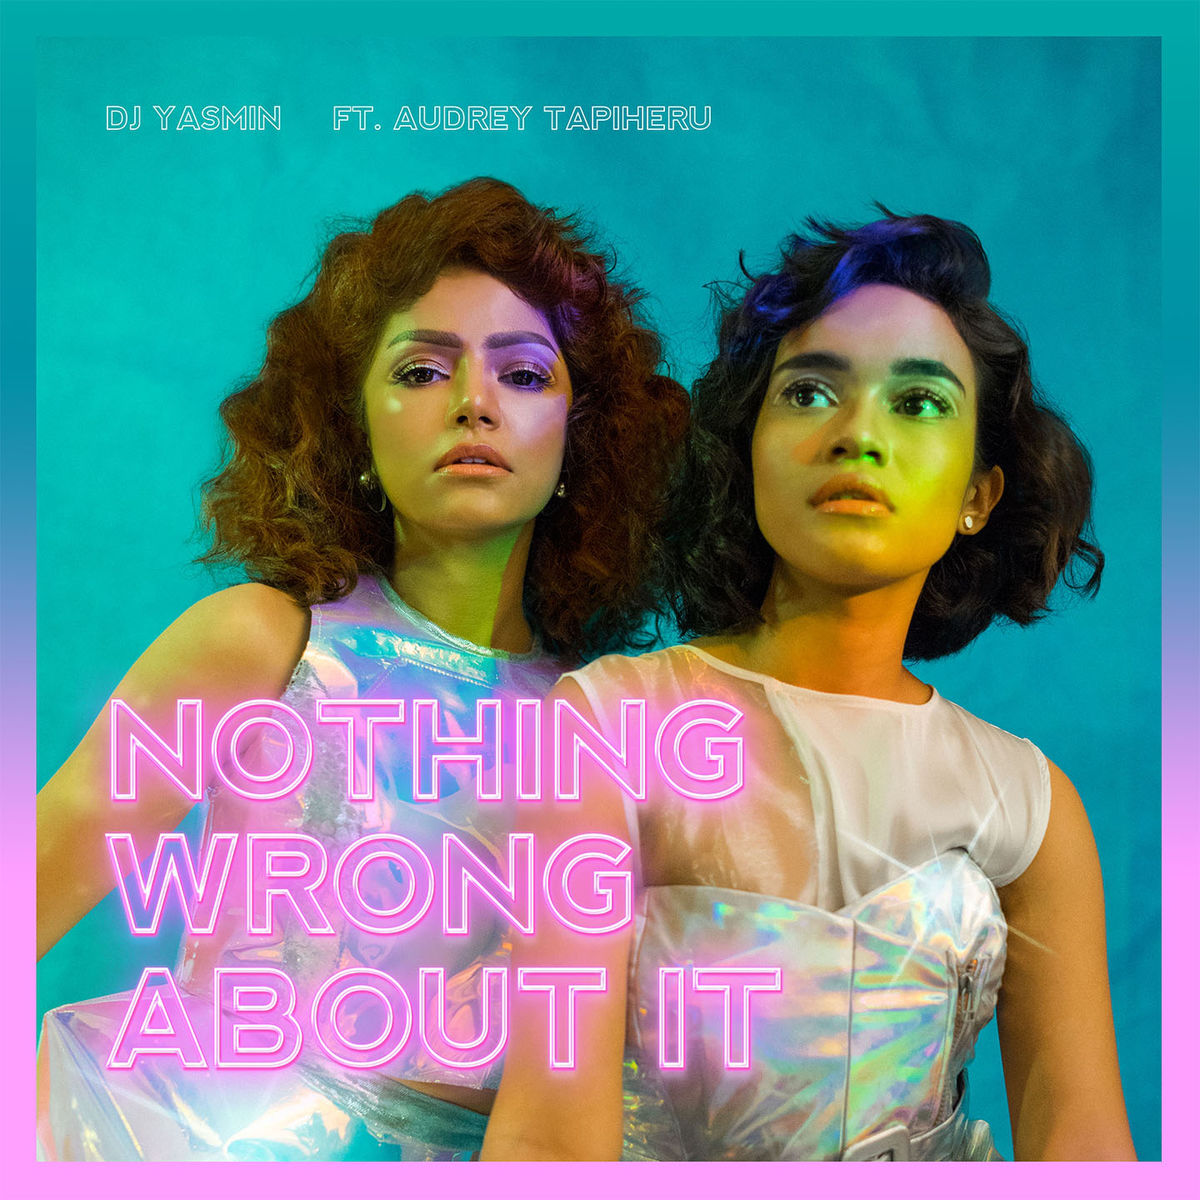 Dj Yasmin - Nothing Wrong About It